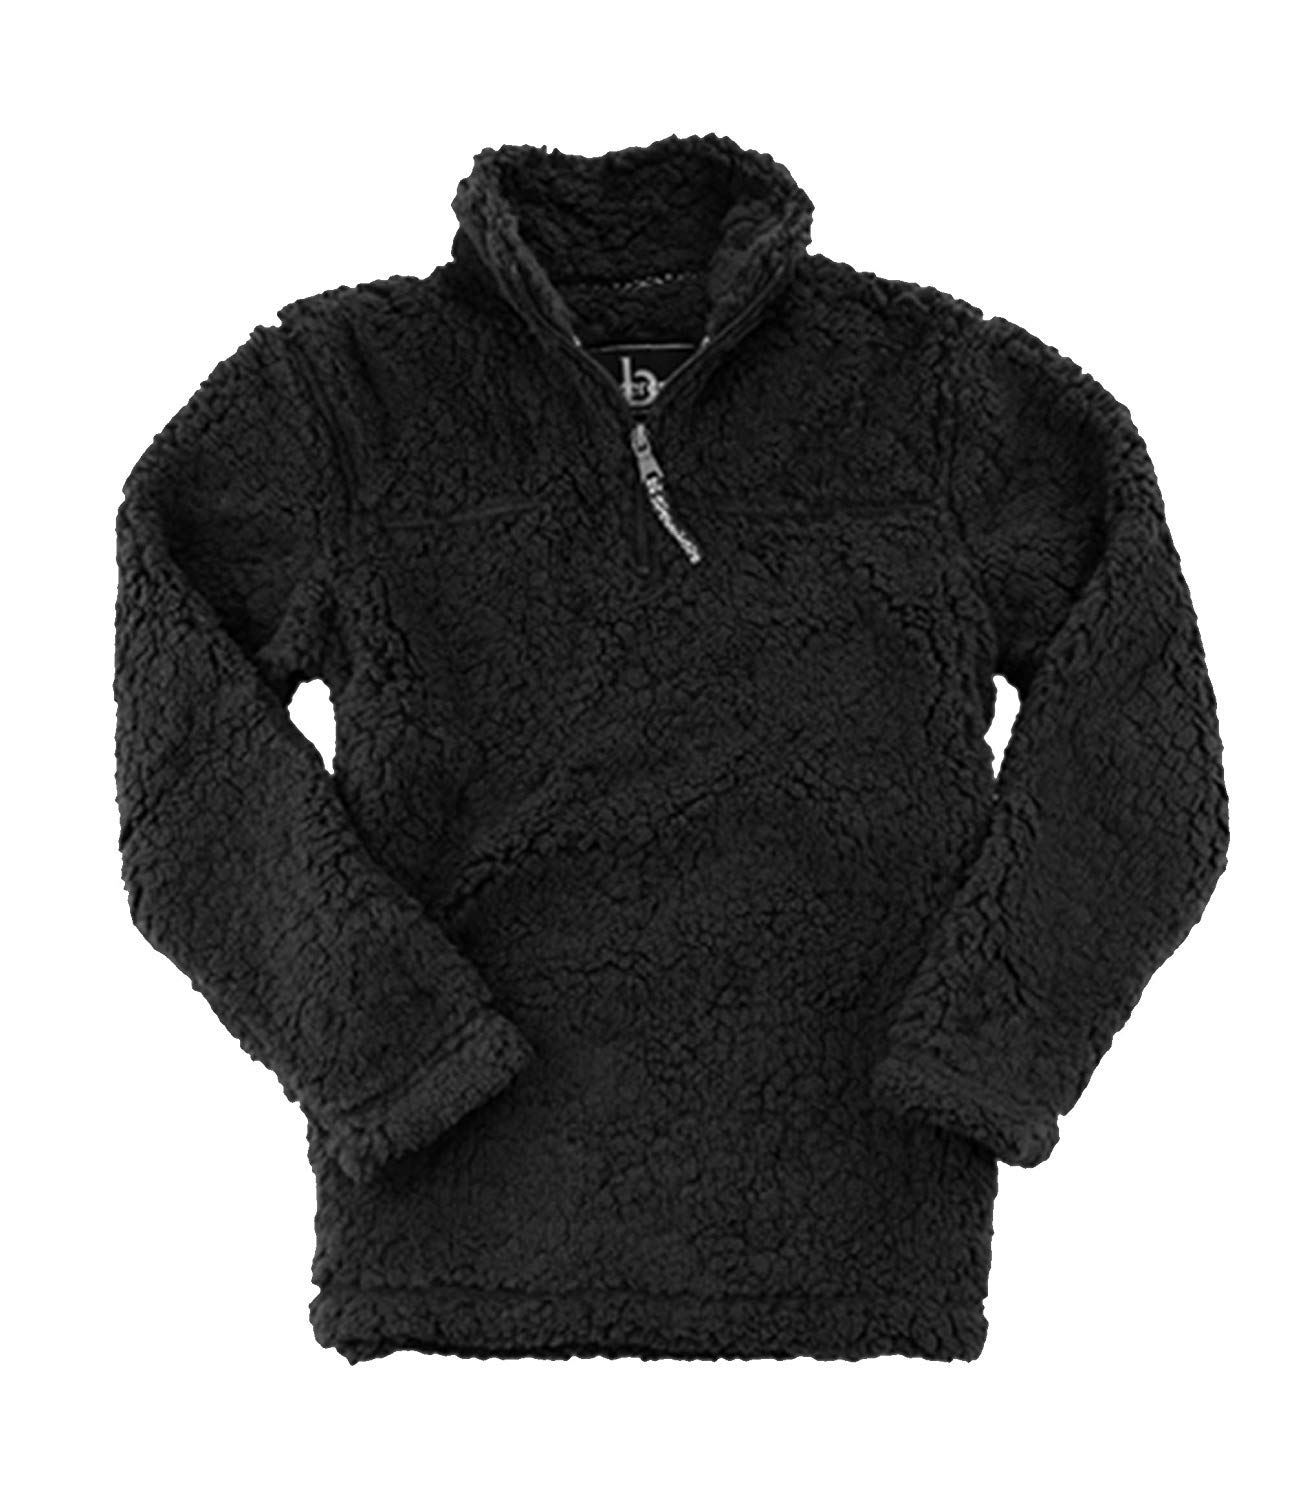 Boxercraft Adult Quarter Zip Sherpa Pullover-black-medium by Boxercraft Adult Quarter Zip Sherpa Pullover-black-large